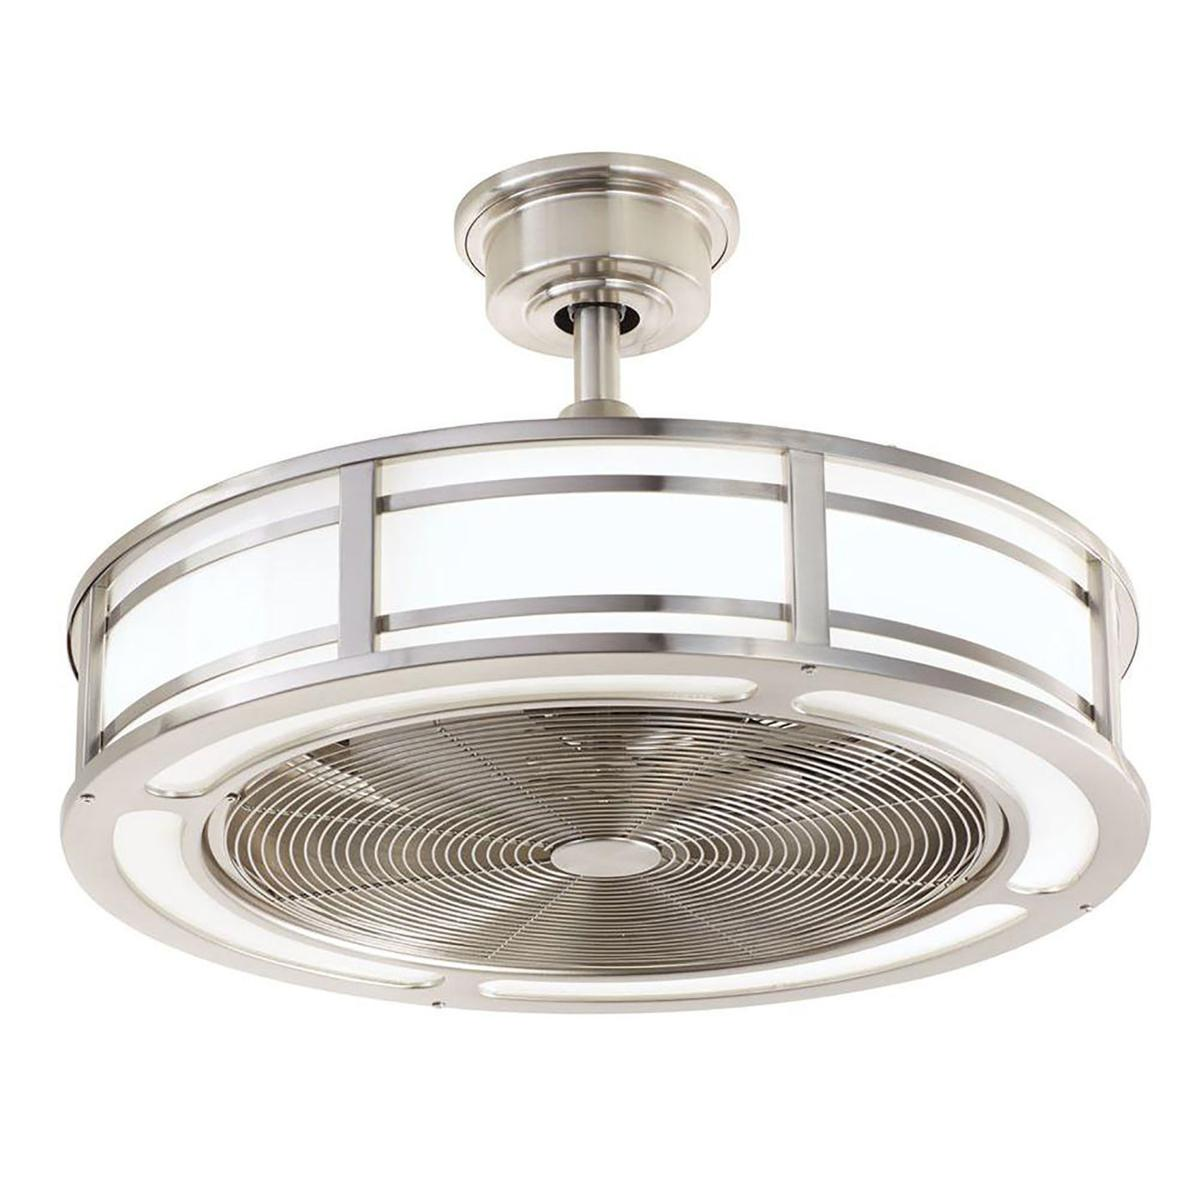 These Ceiling Fans Don T Just Keep You Cool They Look